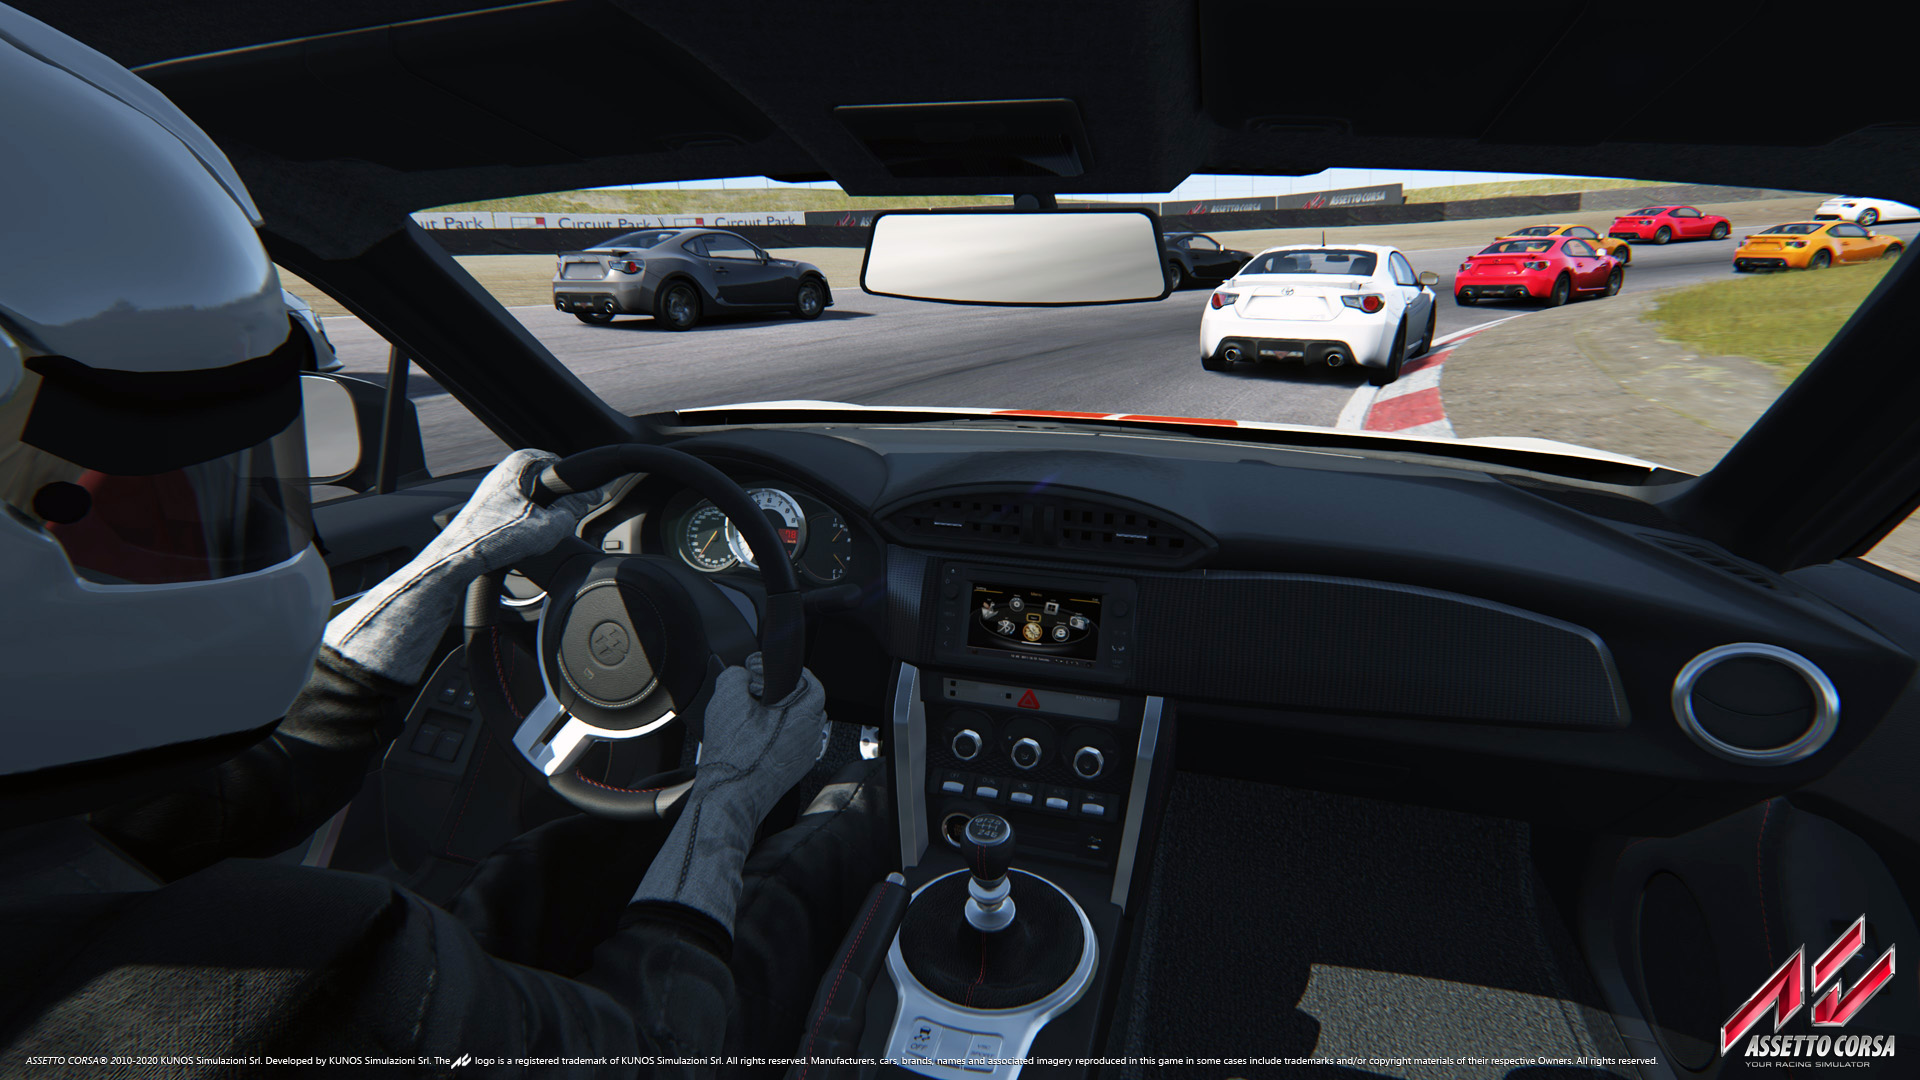 Assetto Corsa Review Your Italian Racing Simulator The News Wheel